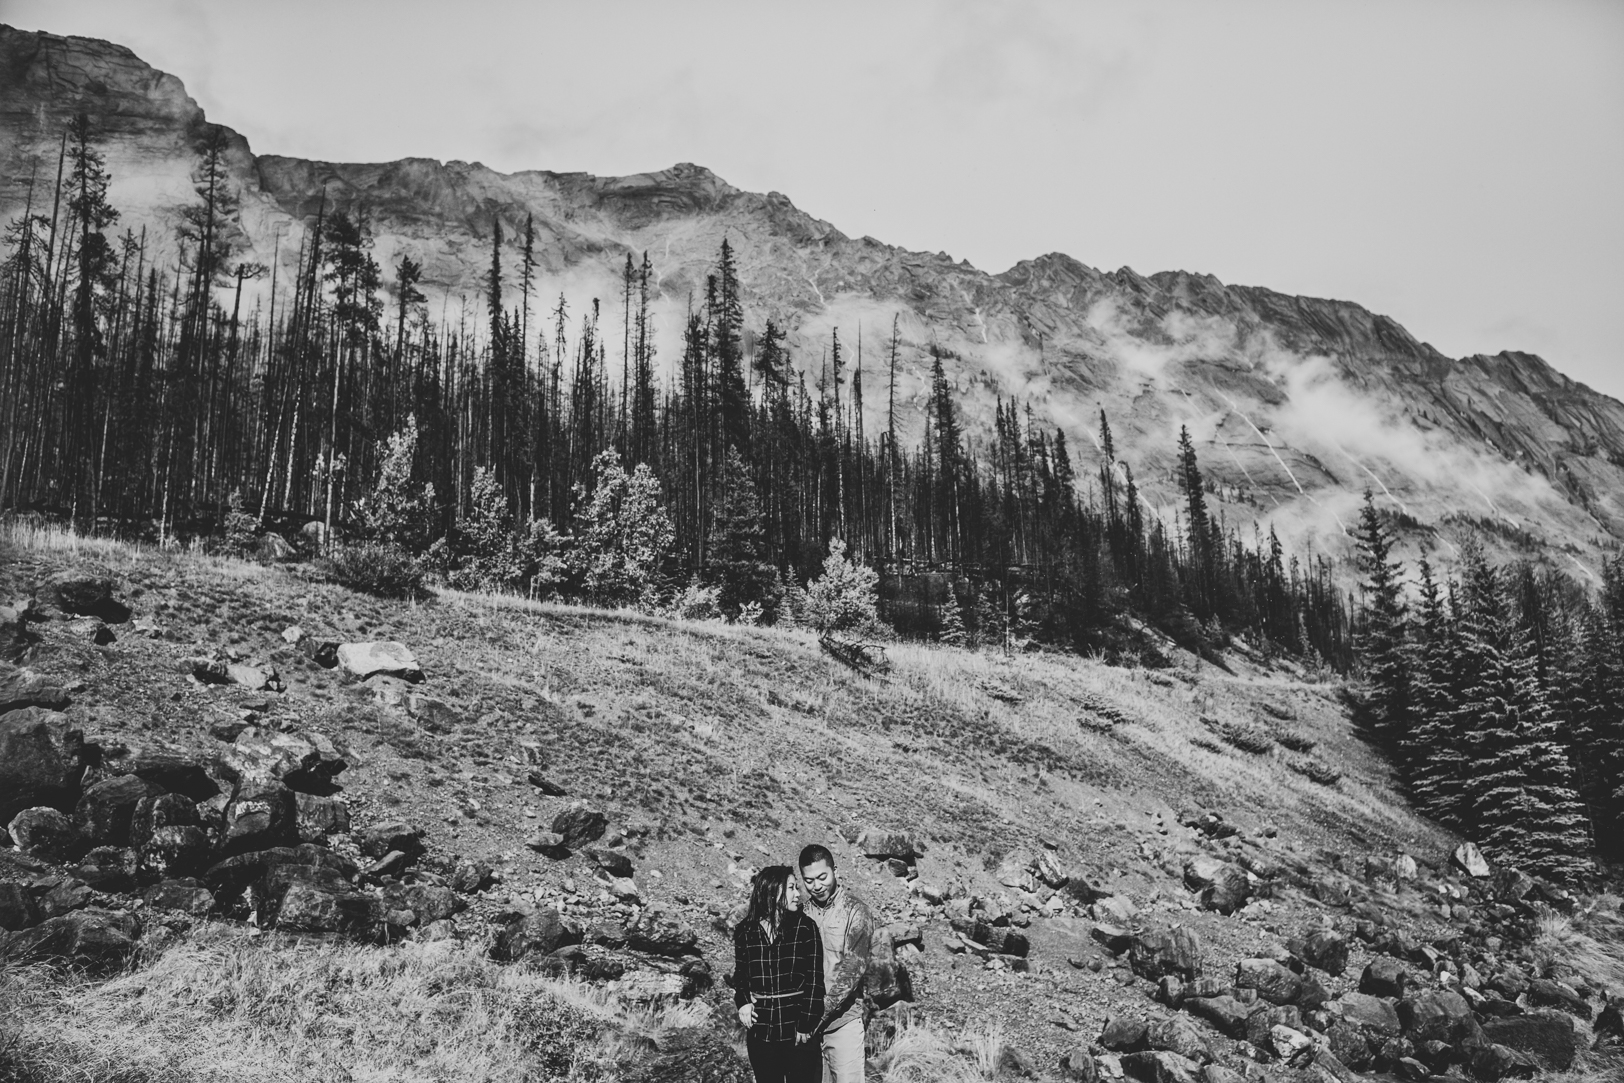 Engagement Photos in the Mountains